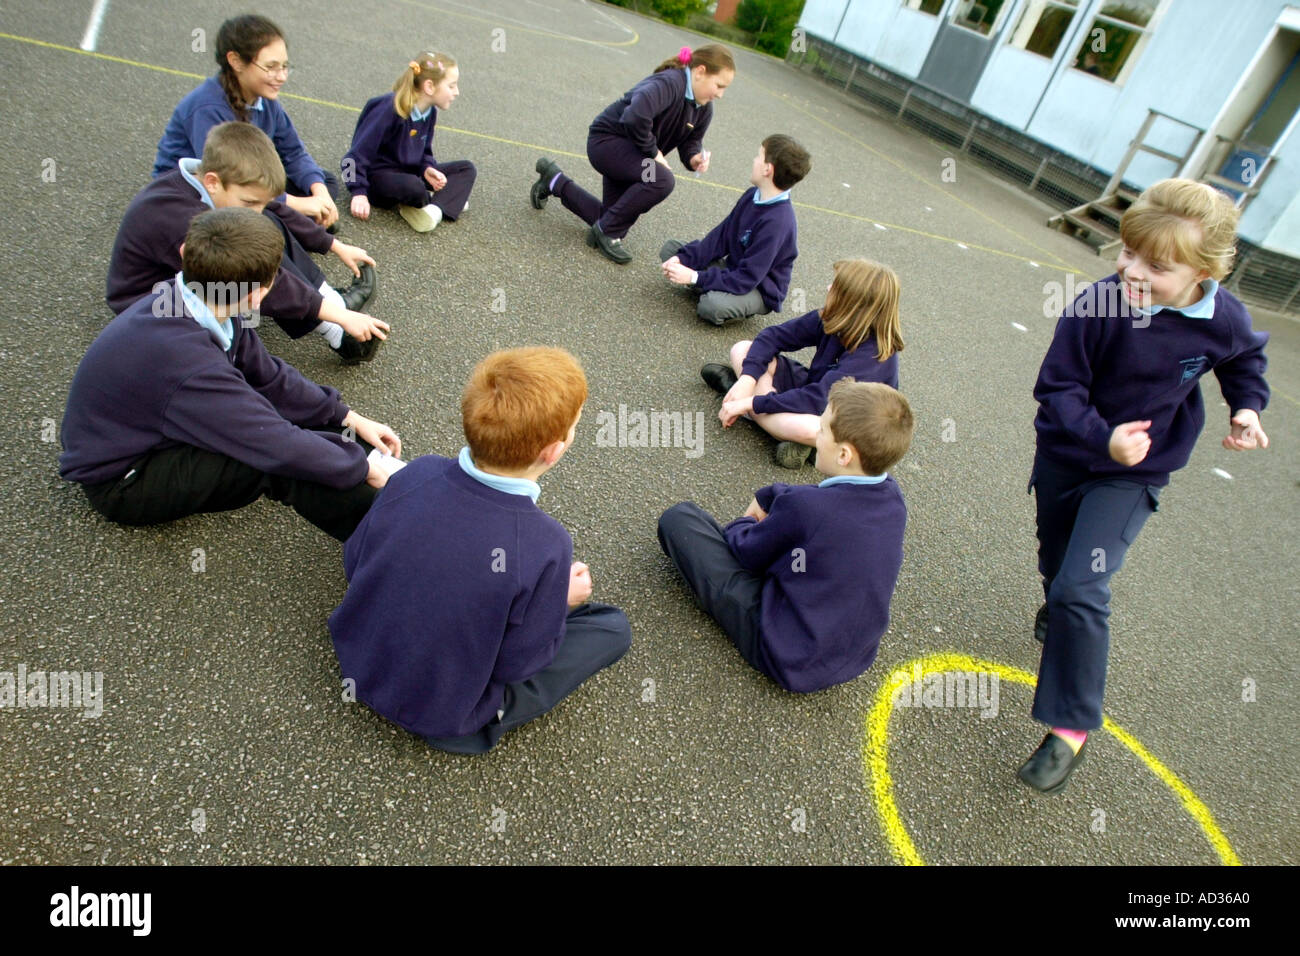 pupils-play-i-wrote-a-letter-to-my-love-game-at-break-time-in-the-AD36A0.jpg